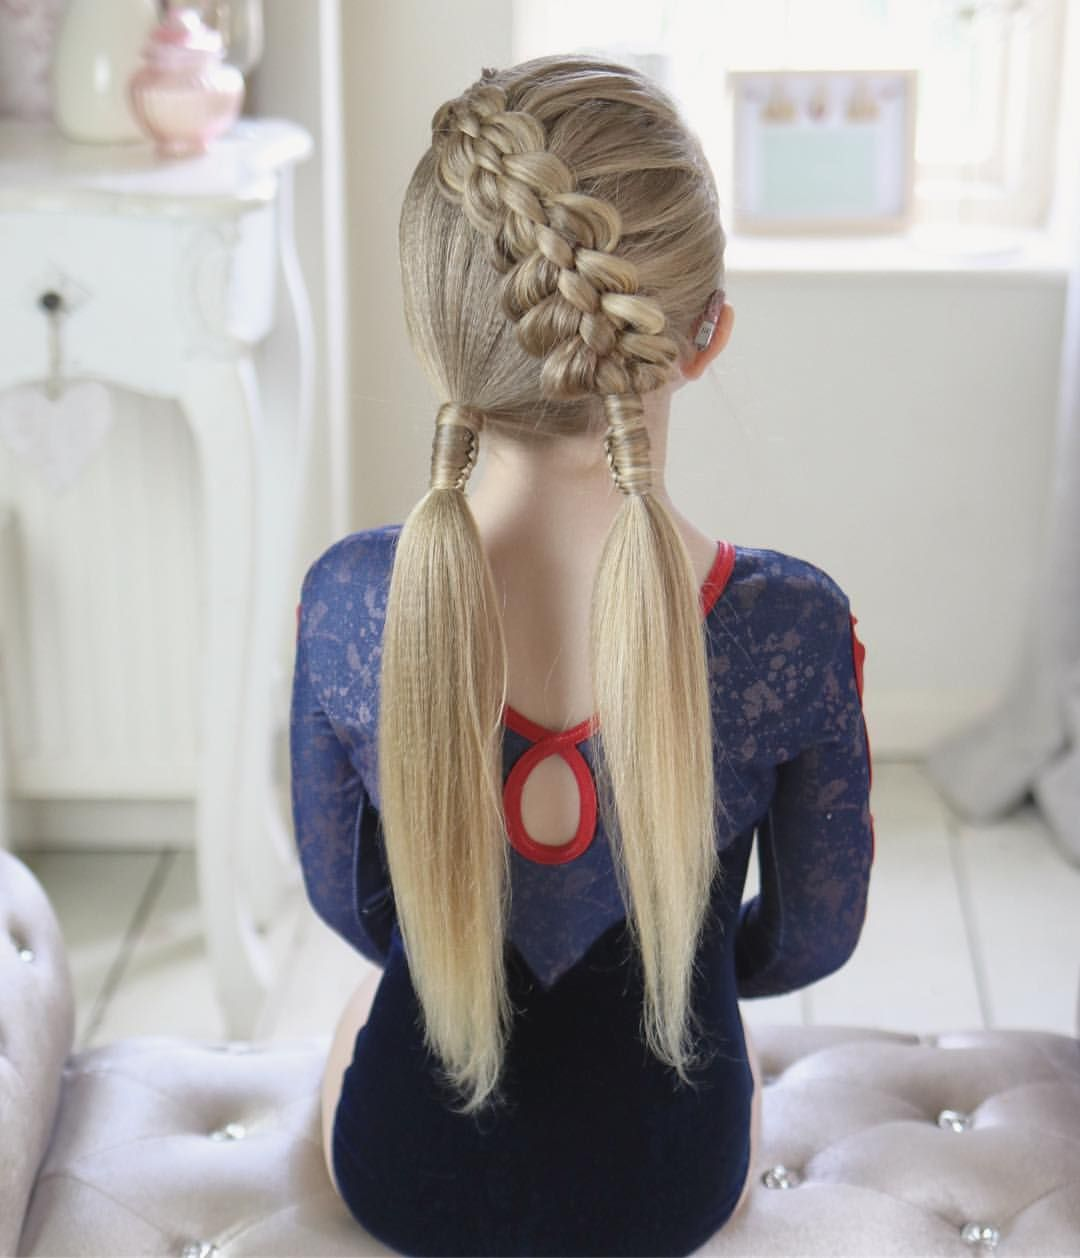 Baylees hair for gymnastics class today have a great